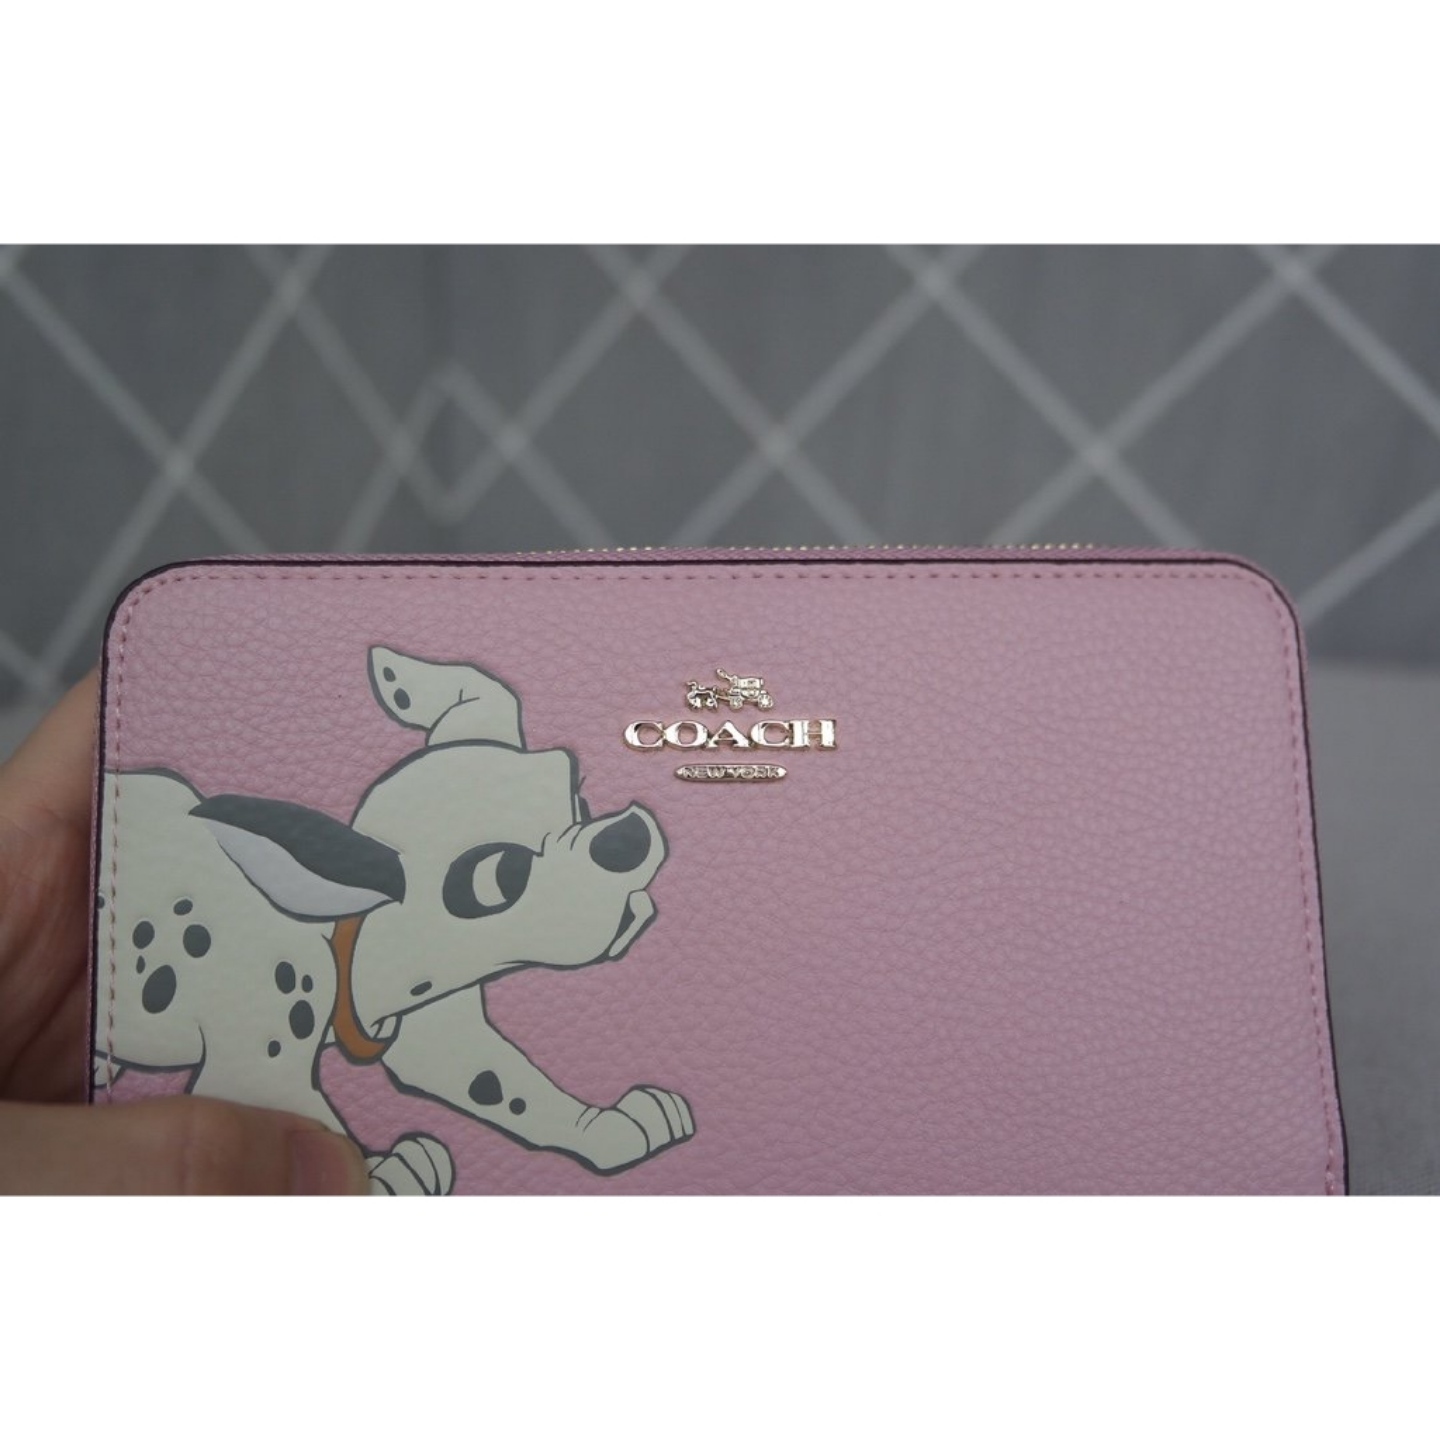 (SG COD)  Ladies Coach Long Wallet F88671 F91191 F93768 Wallet and Cardholder Zipper Wallet Long Wallet